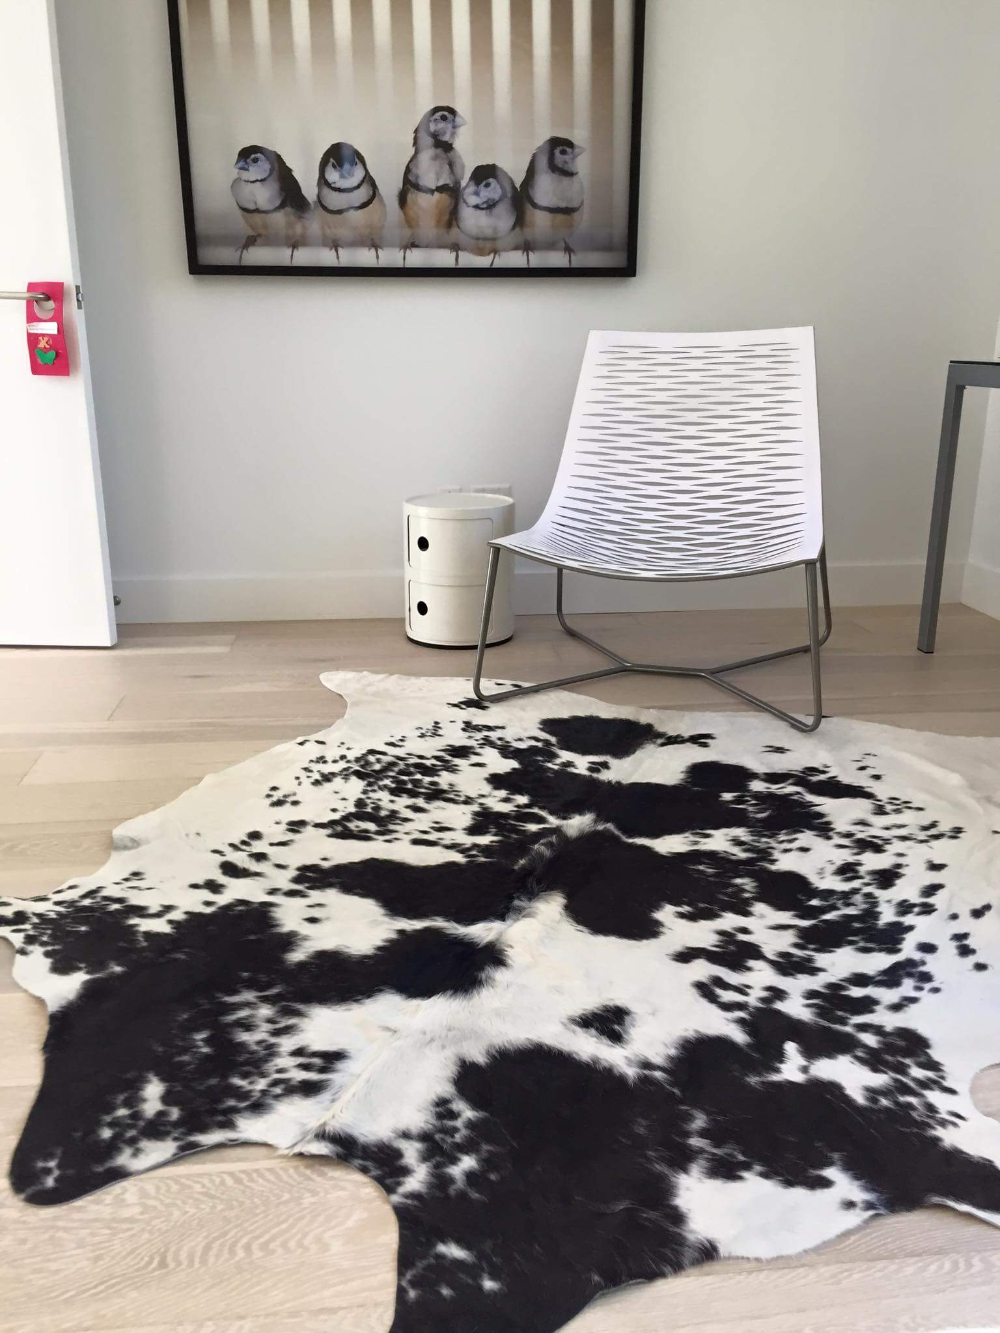 Cow Hide Rugs Canada In Black White Just For Your Living Rom Living Room Will Look Stunning I Cow Hide Rug Cowhide Rug Living Room Beautiful Living Rooms Decor